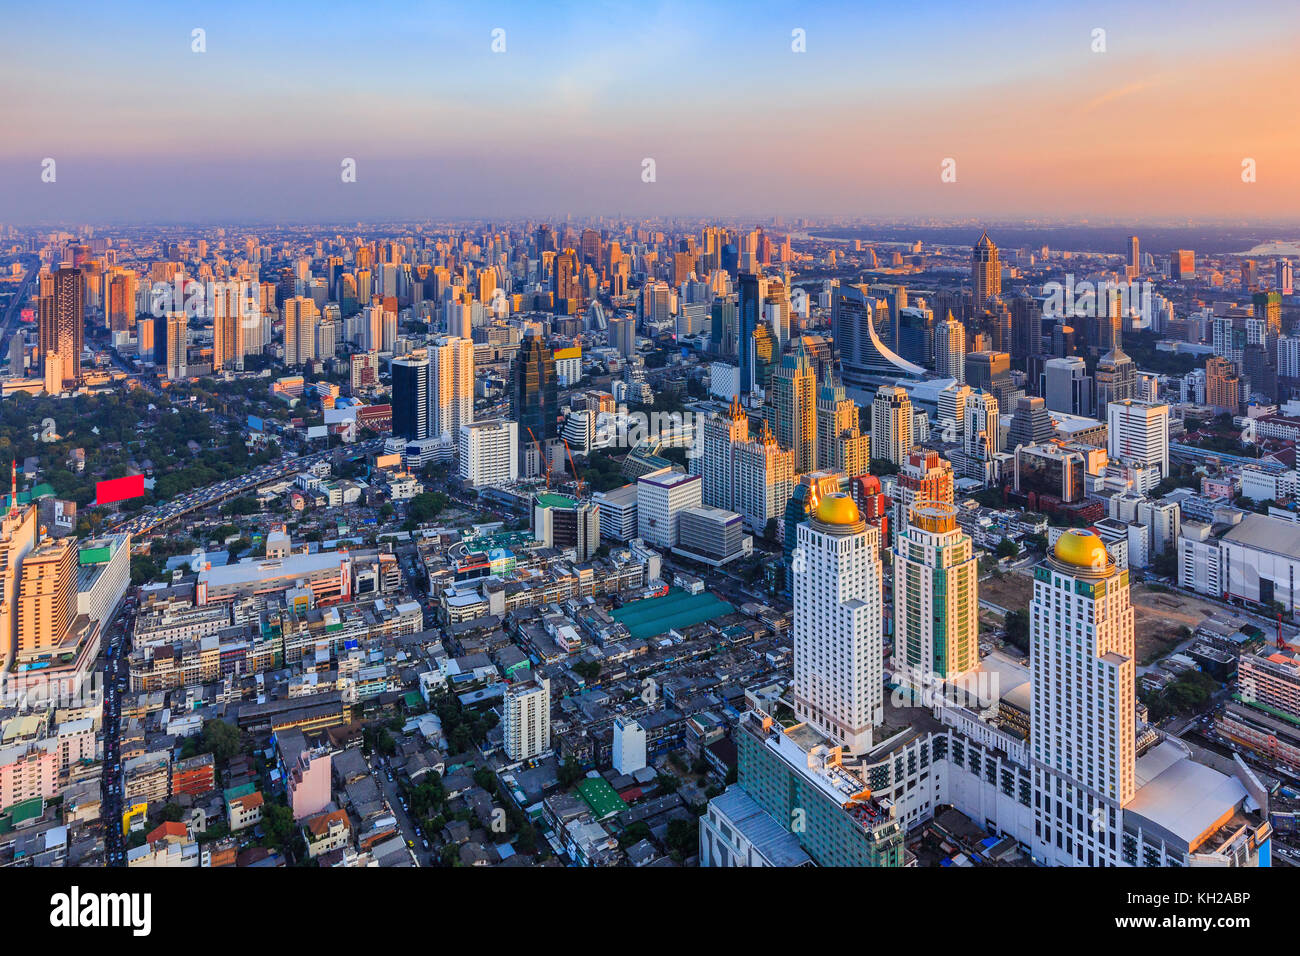 Bangkok, Thailand. The city skyline at sunset. - Stock Image